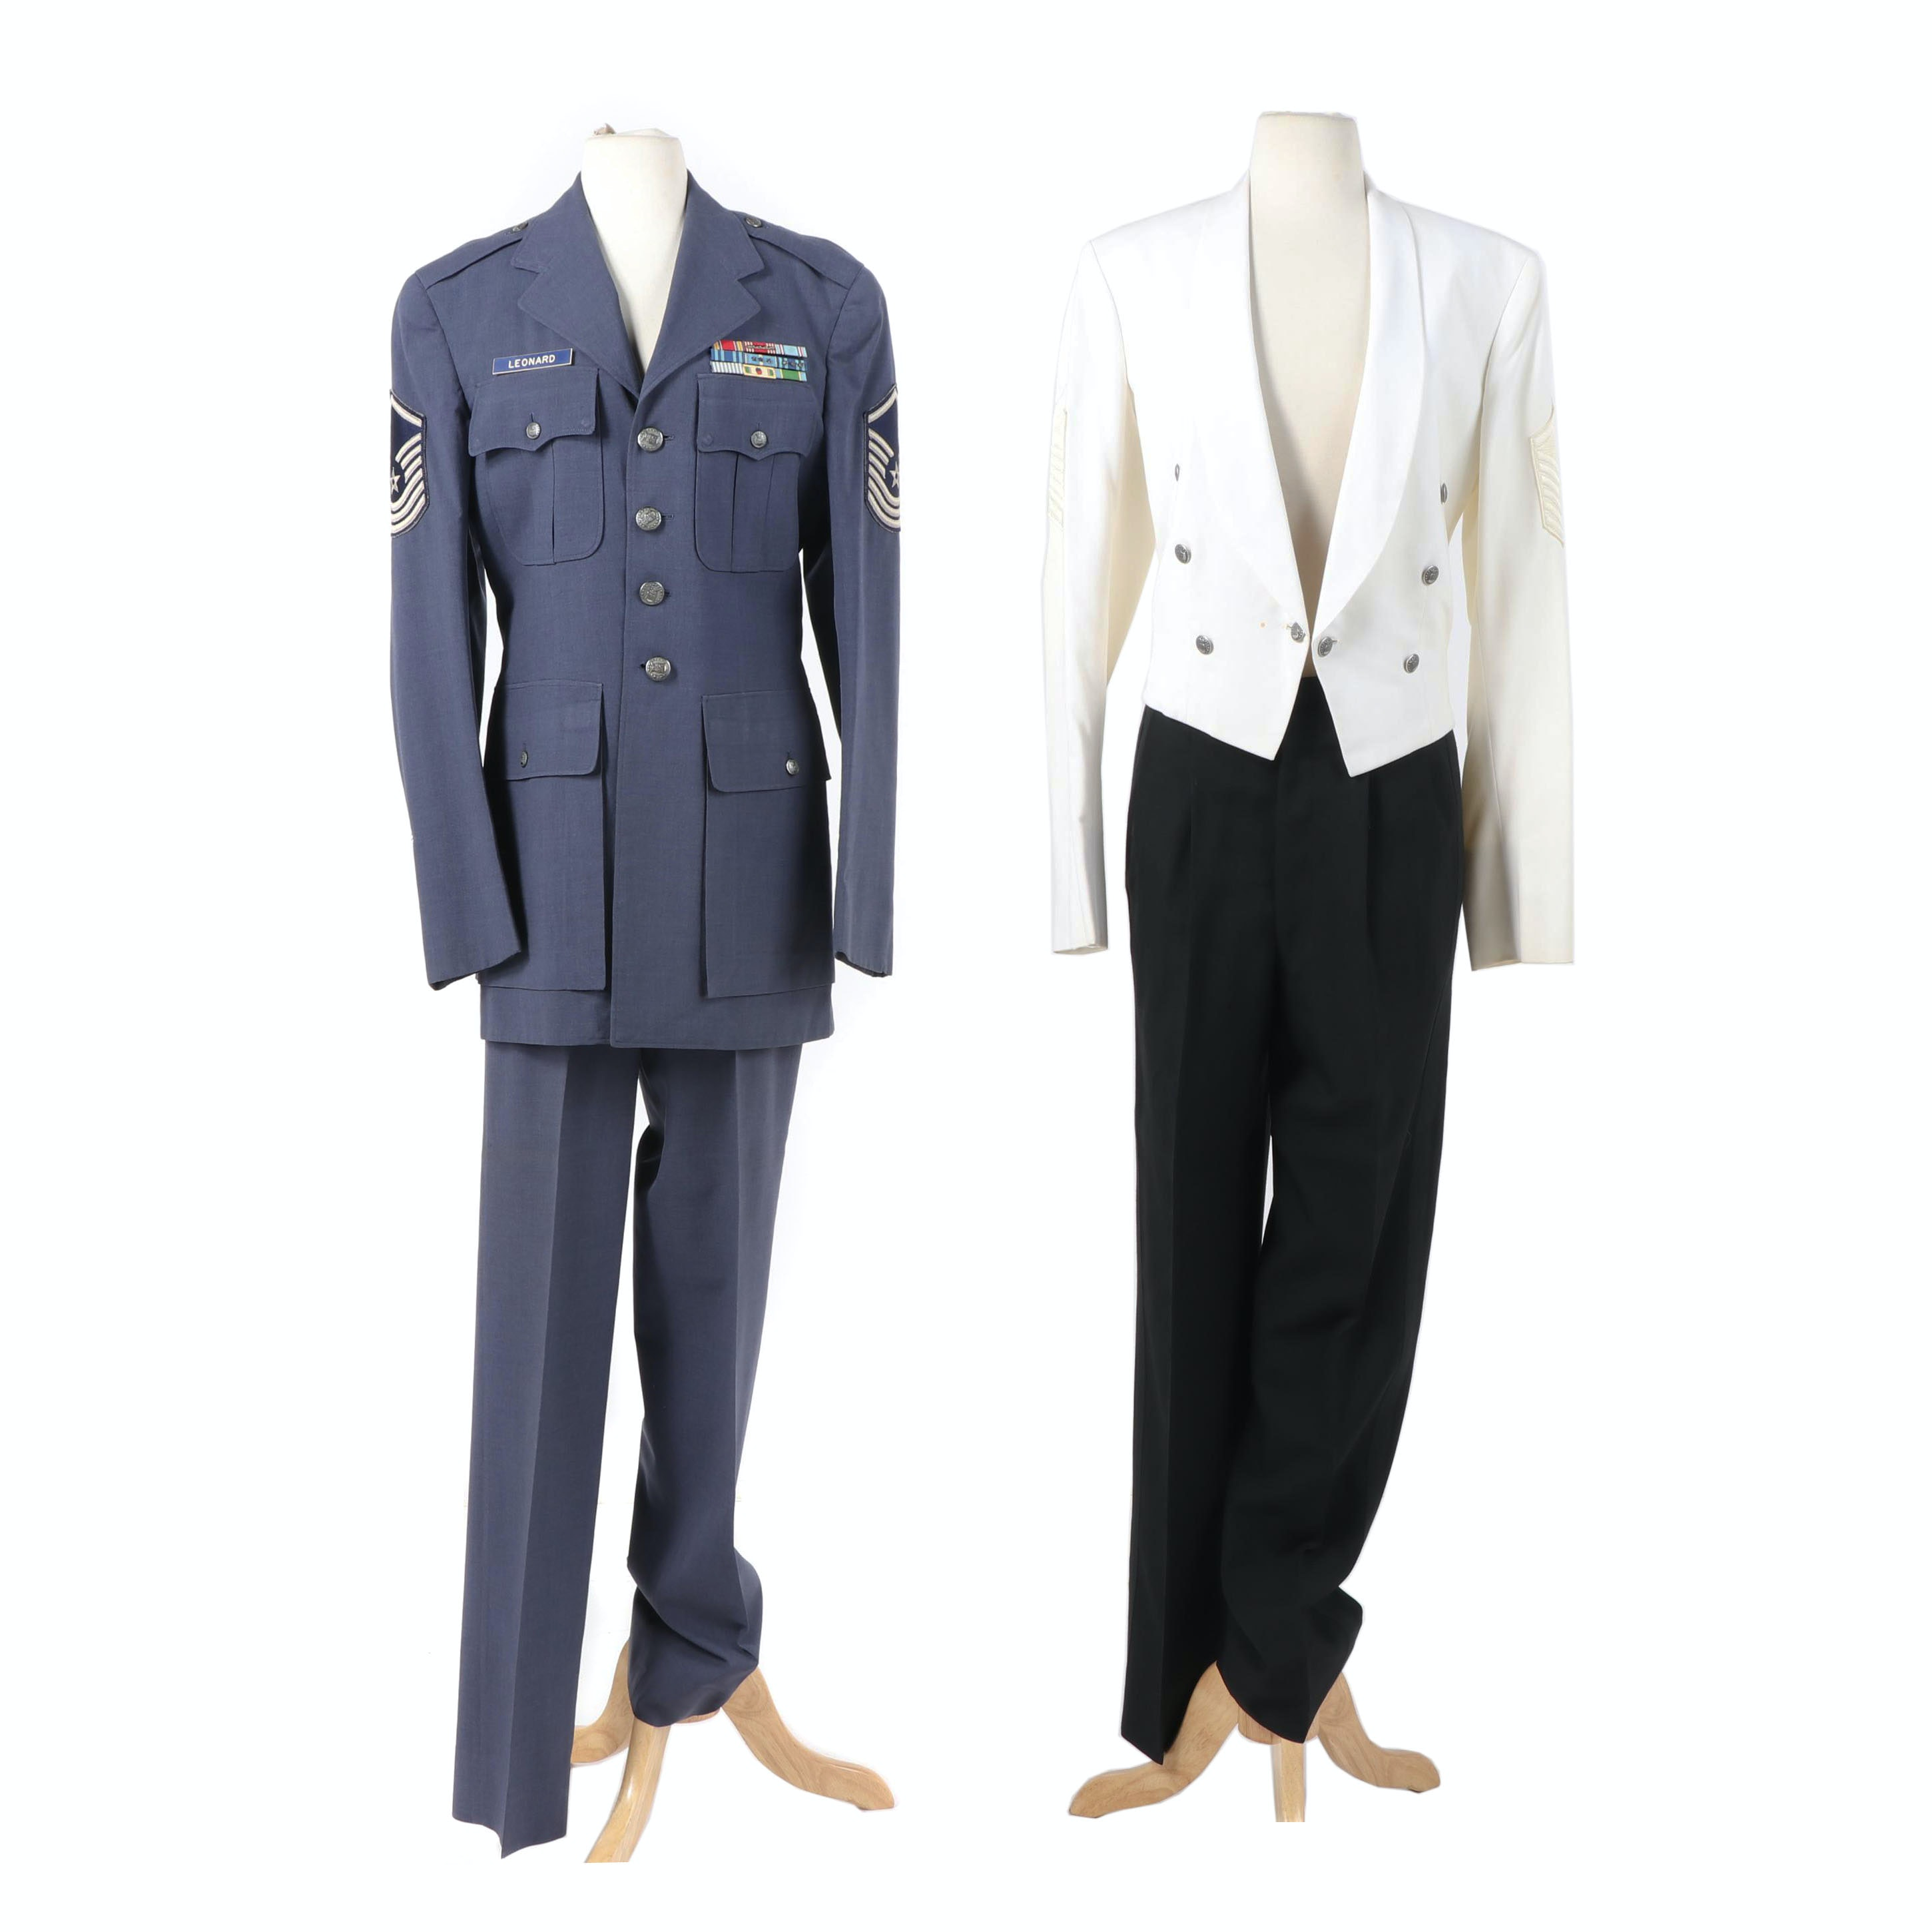 Vintage Air Force Master Sergeant Dress Uniform and Formal Dinner Uniform